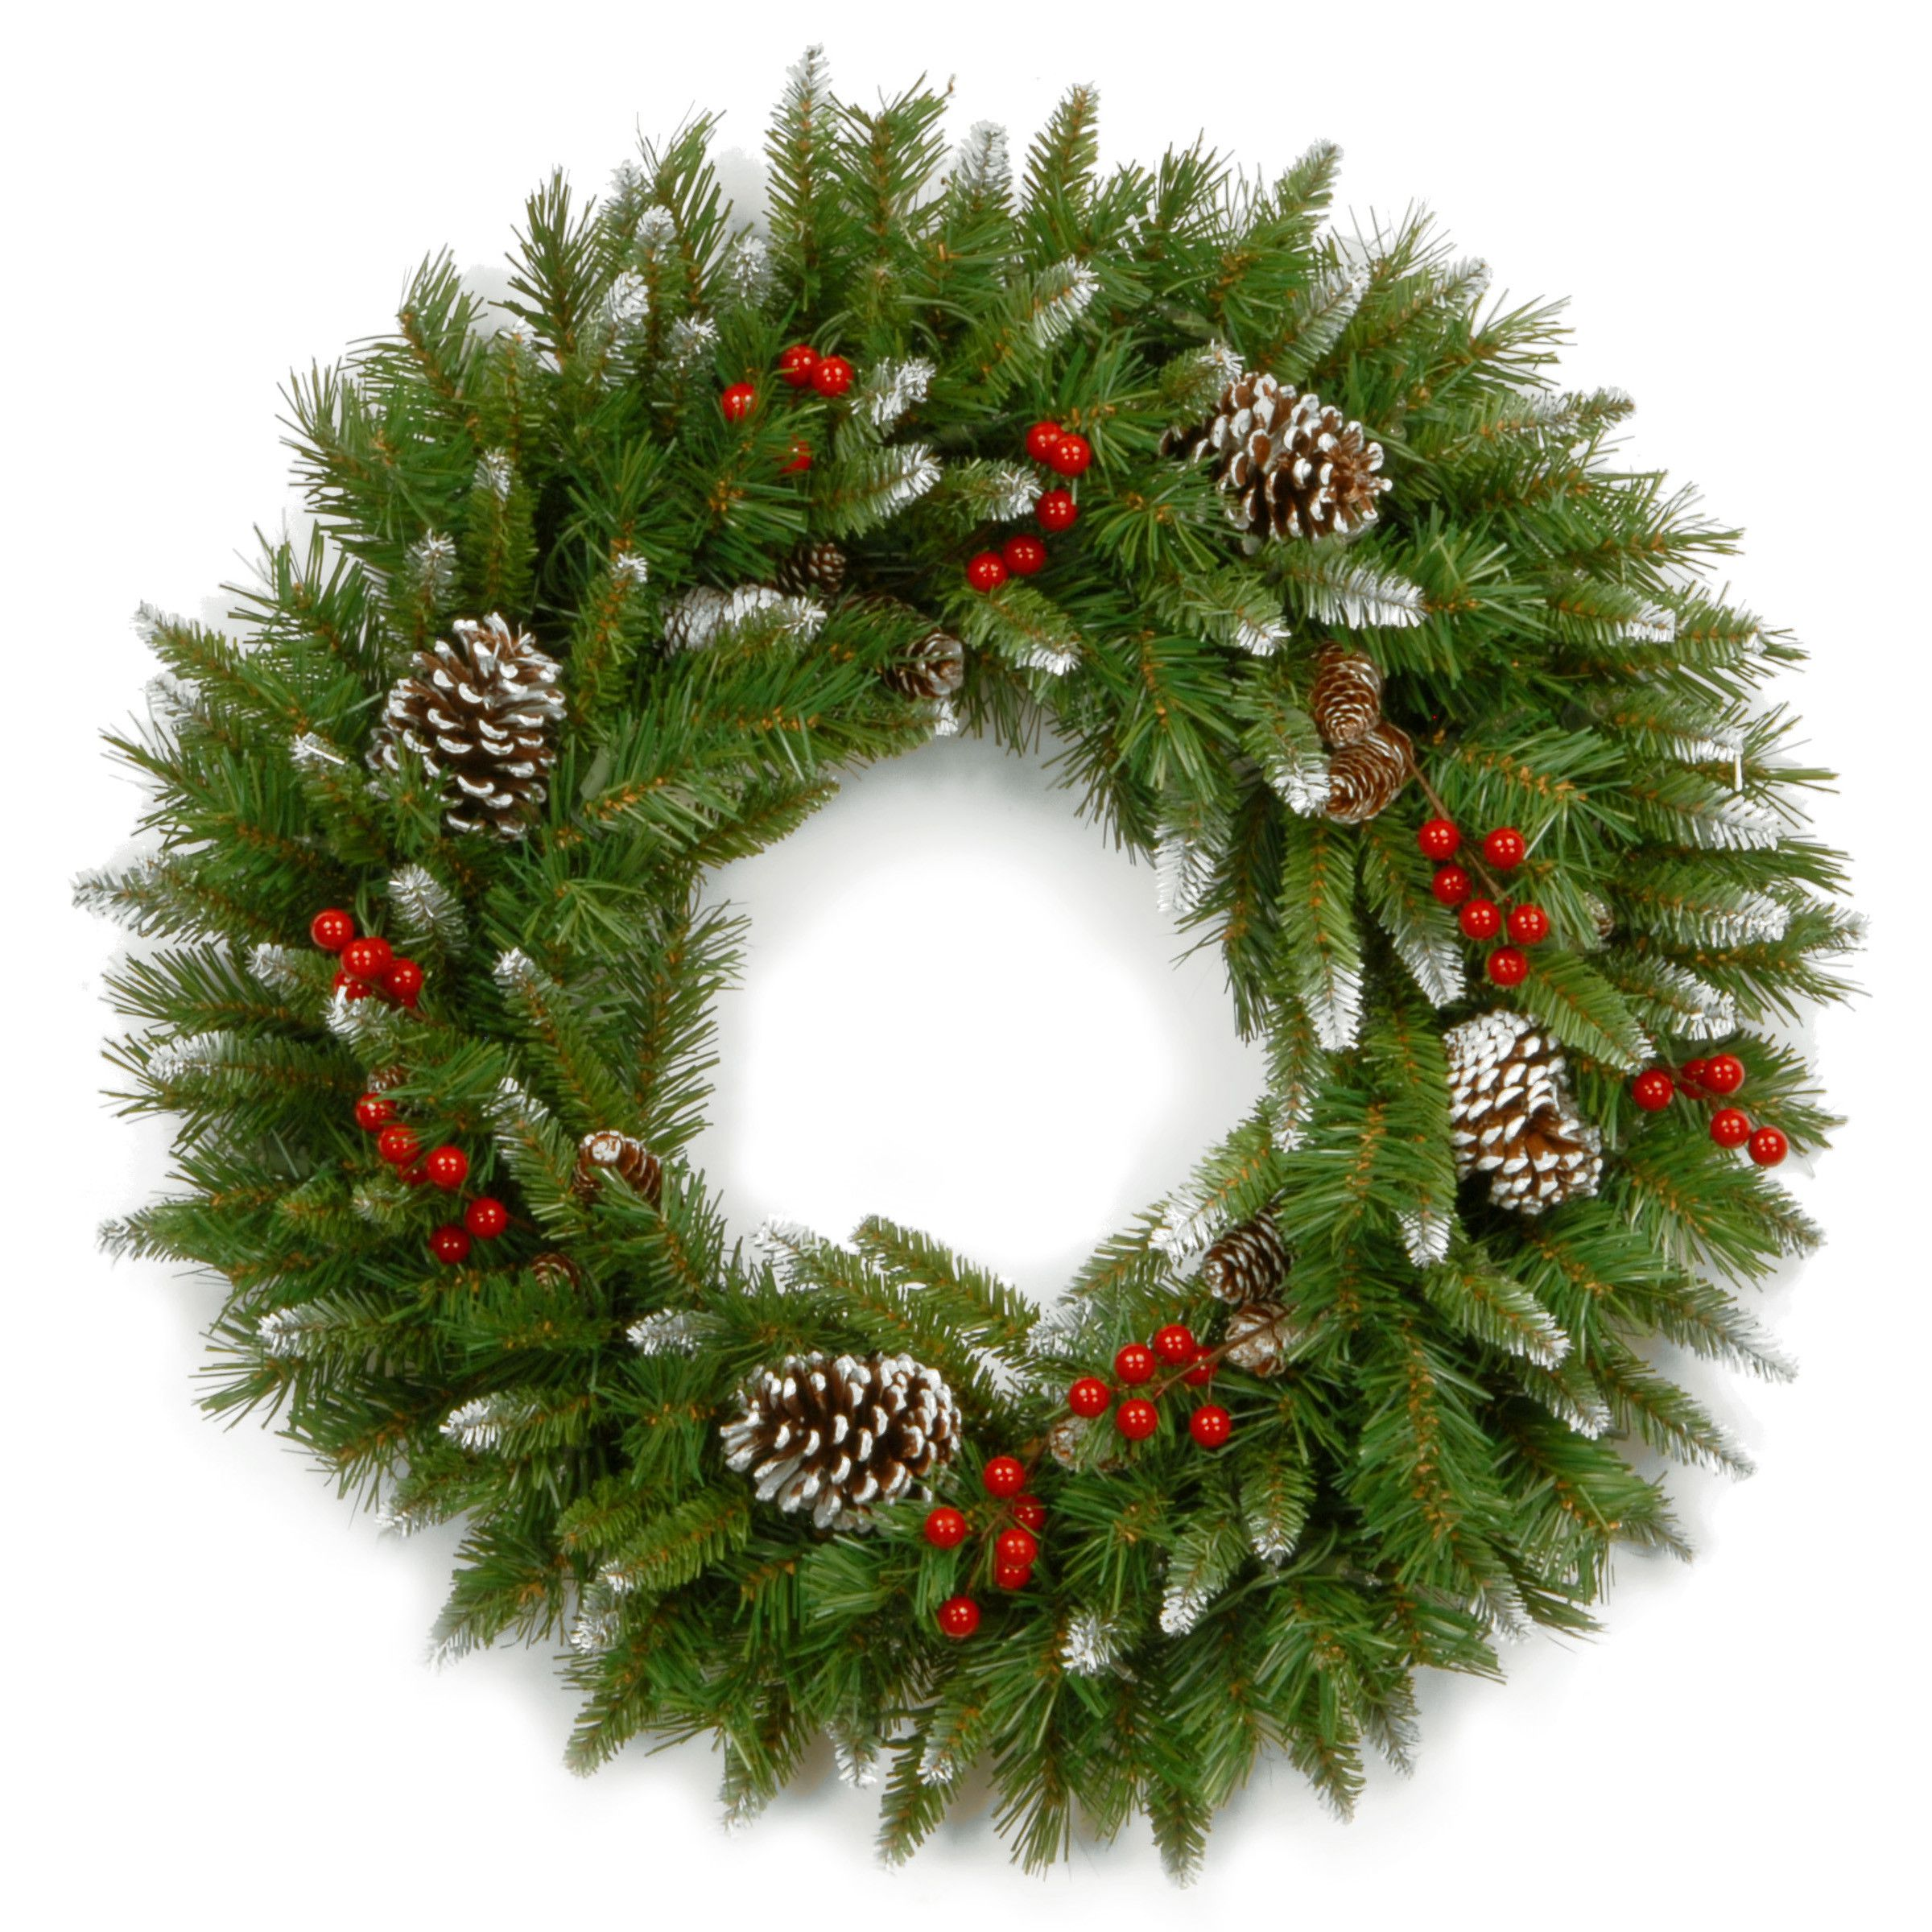 Christmas Wreath Making Workshop in The Watson Institute on Saturday December 7th 2019